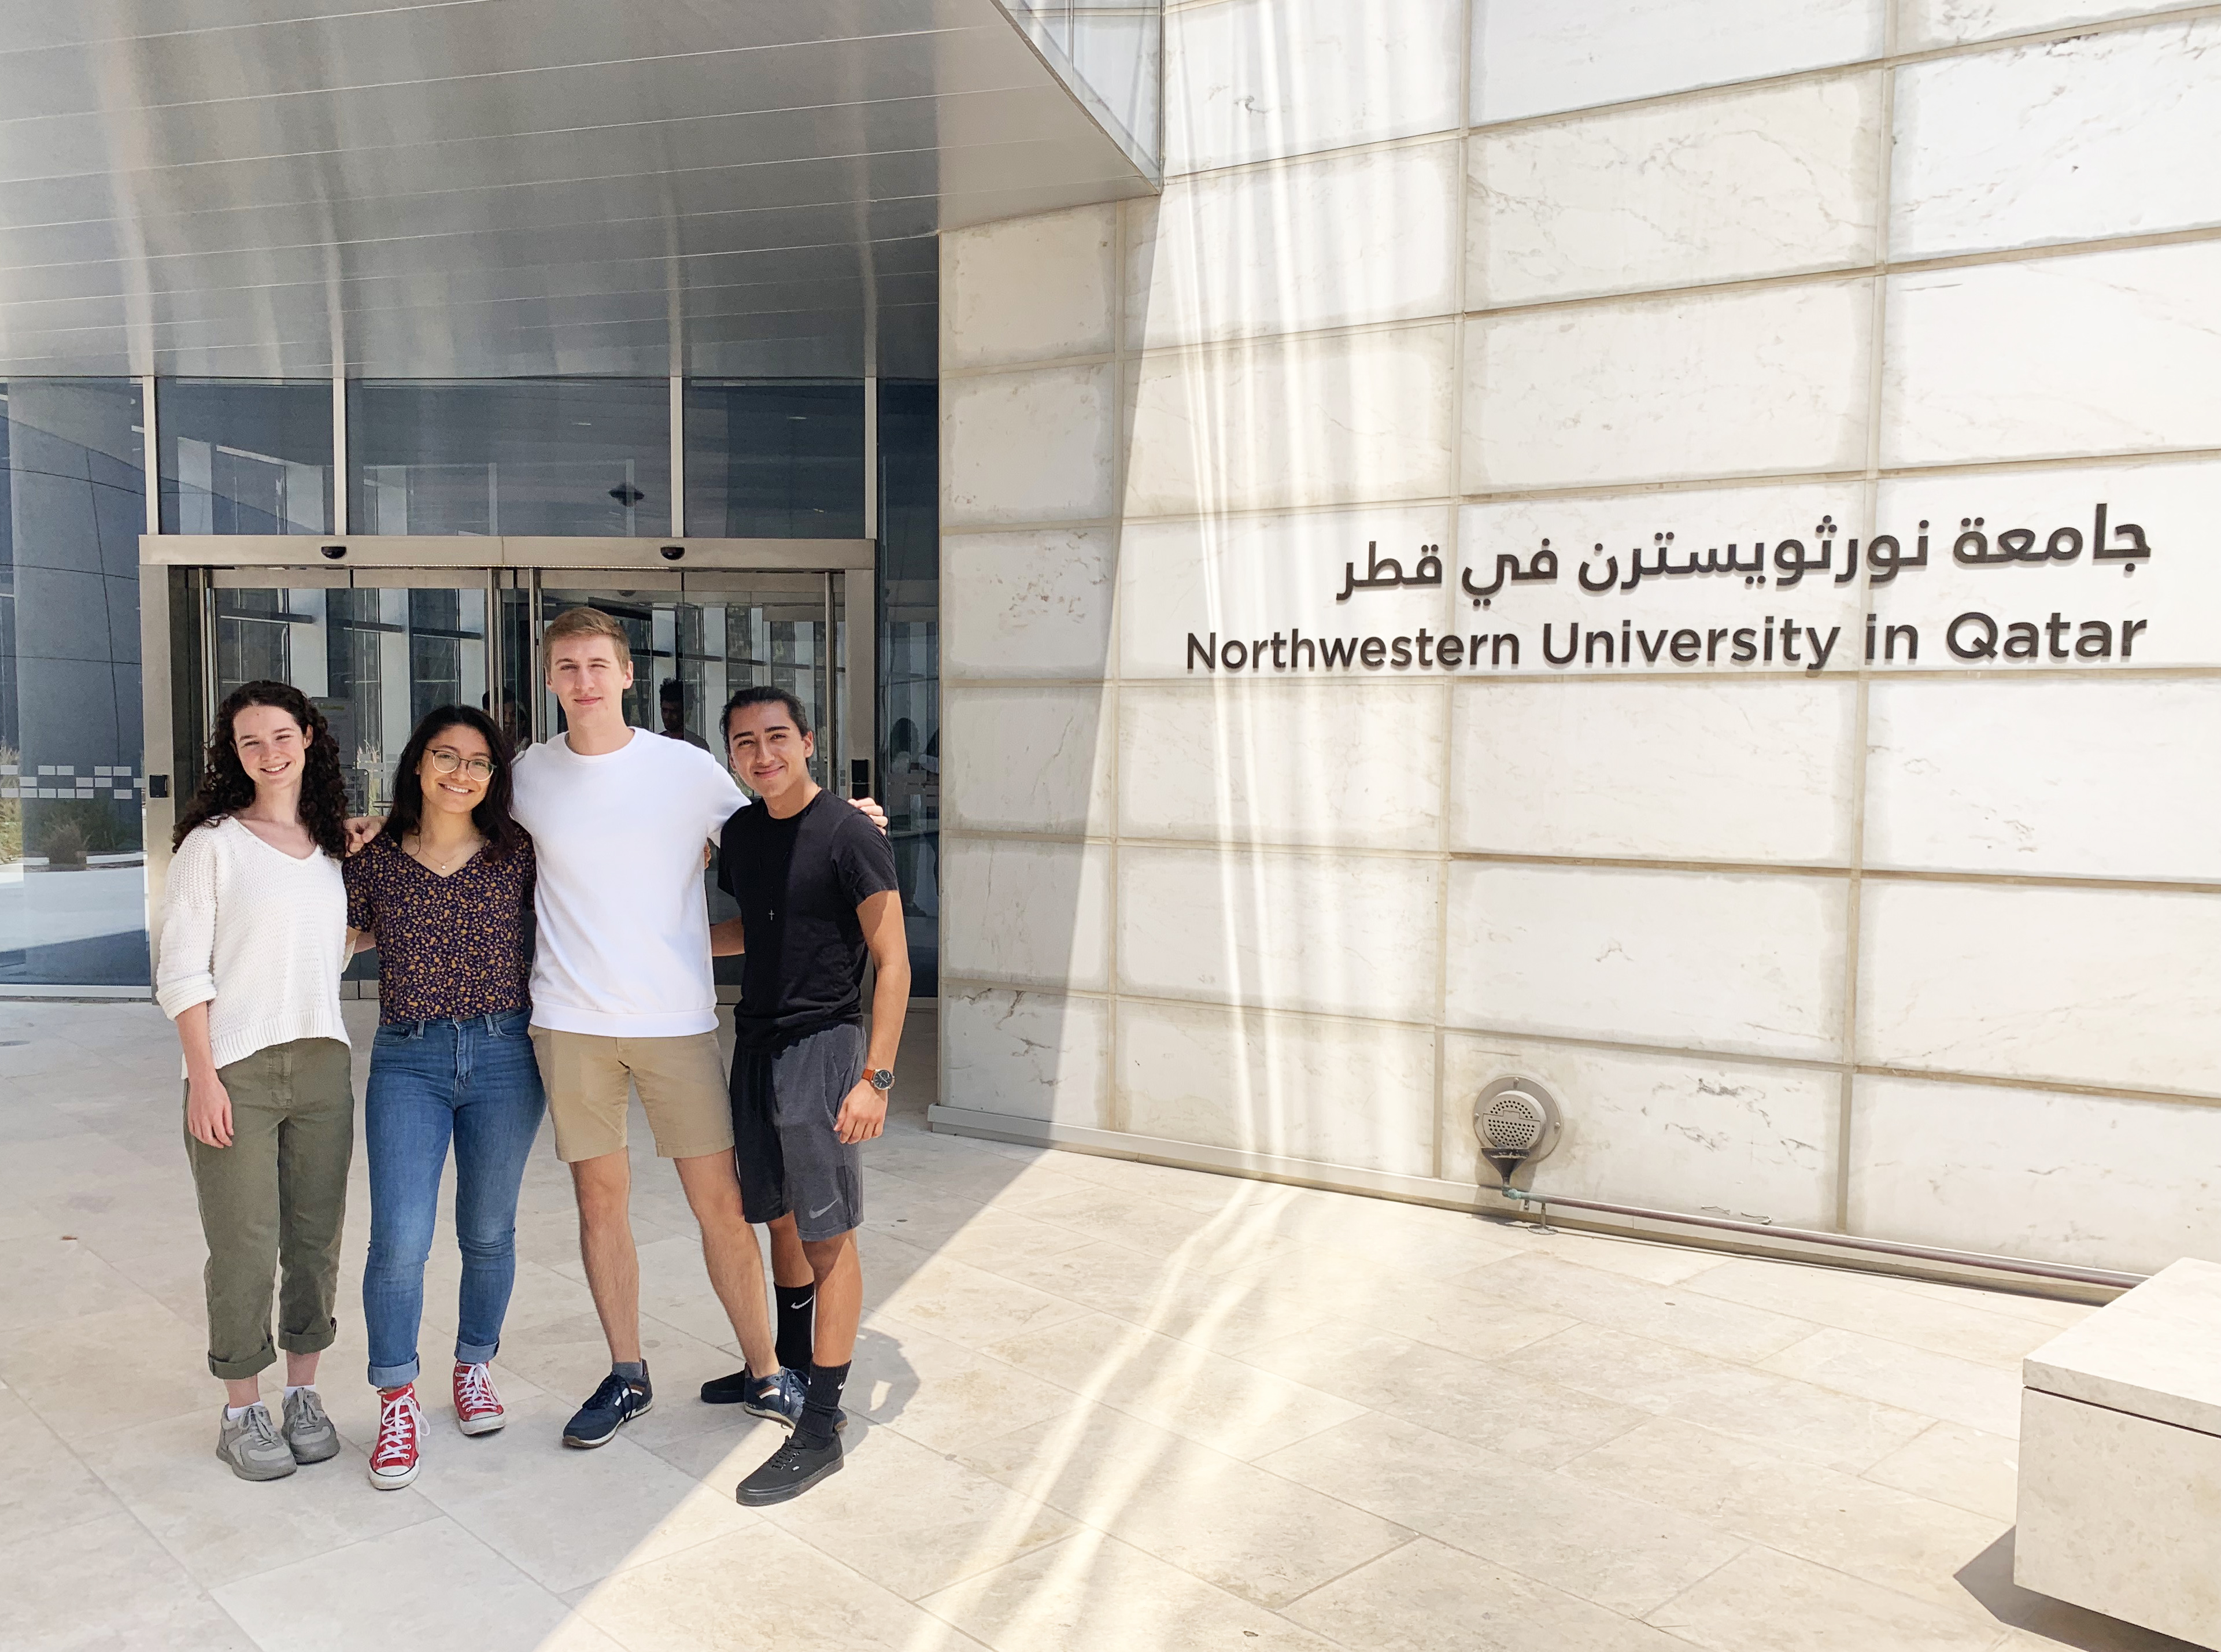 A group of four students from Evanston -- (l to r) Eliza Posner, Leslie Bonilla, Martin Herrmann, and Miguel Aponte -- are spending 16 weeks on Northwestern's Qatar campus to learn about and immerse themselves in the values and vibrancy of the Middle East.